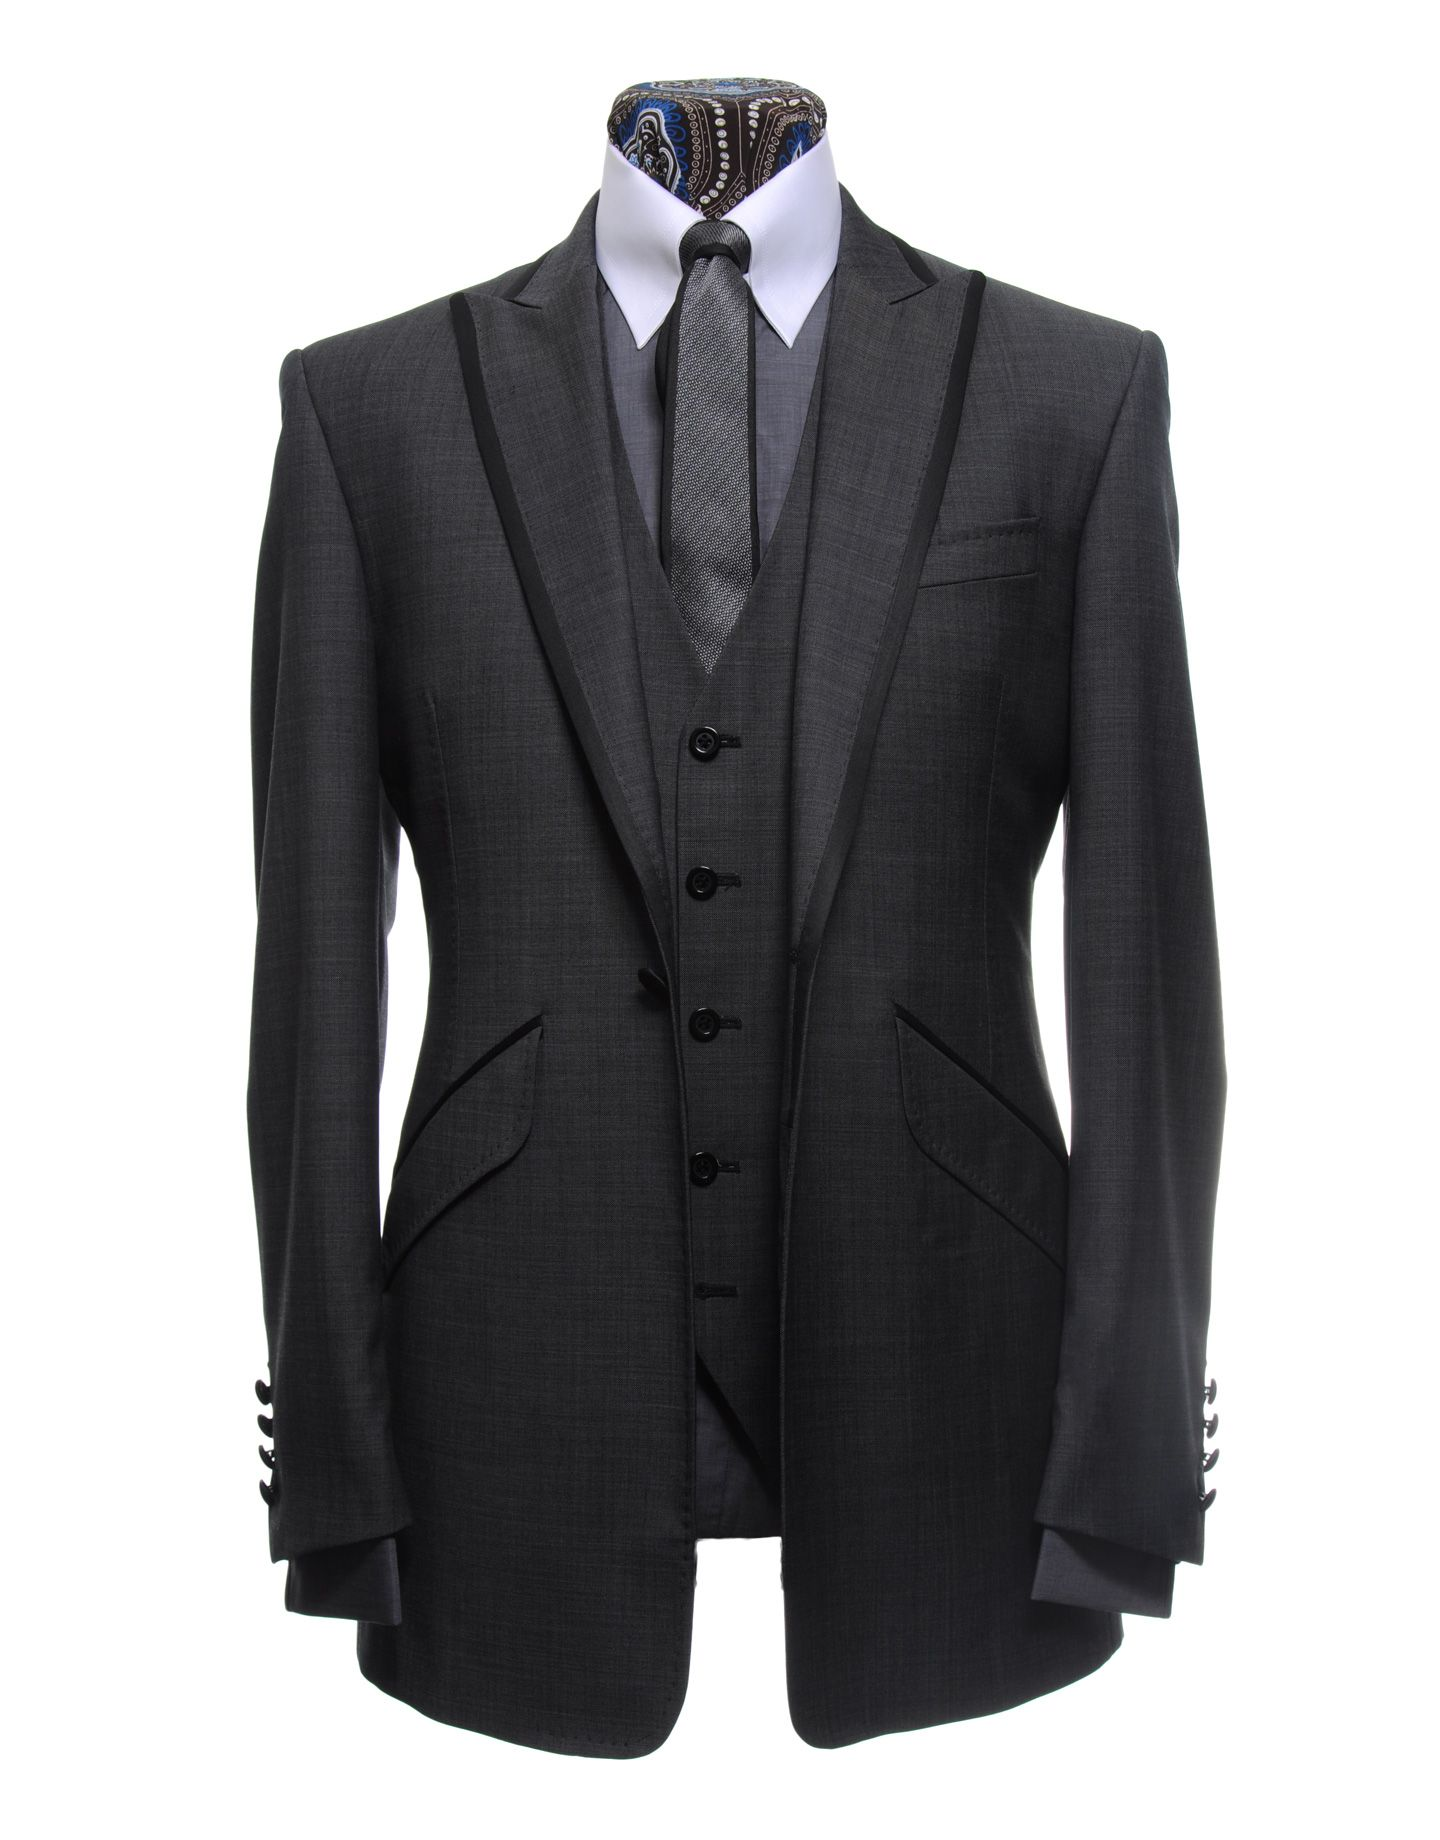 7a91461340393 Classy Suit Fashion, Gents Fashion, Savile Row, Gentleman Style, True  Gentleman,